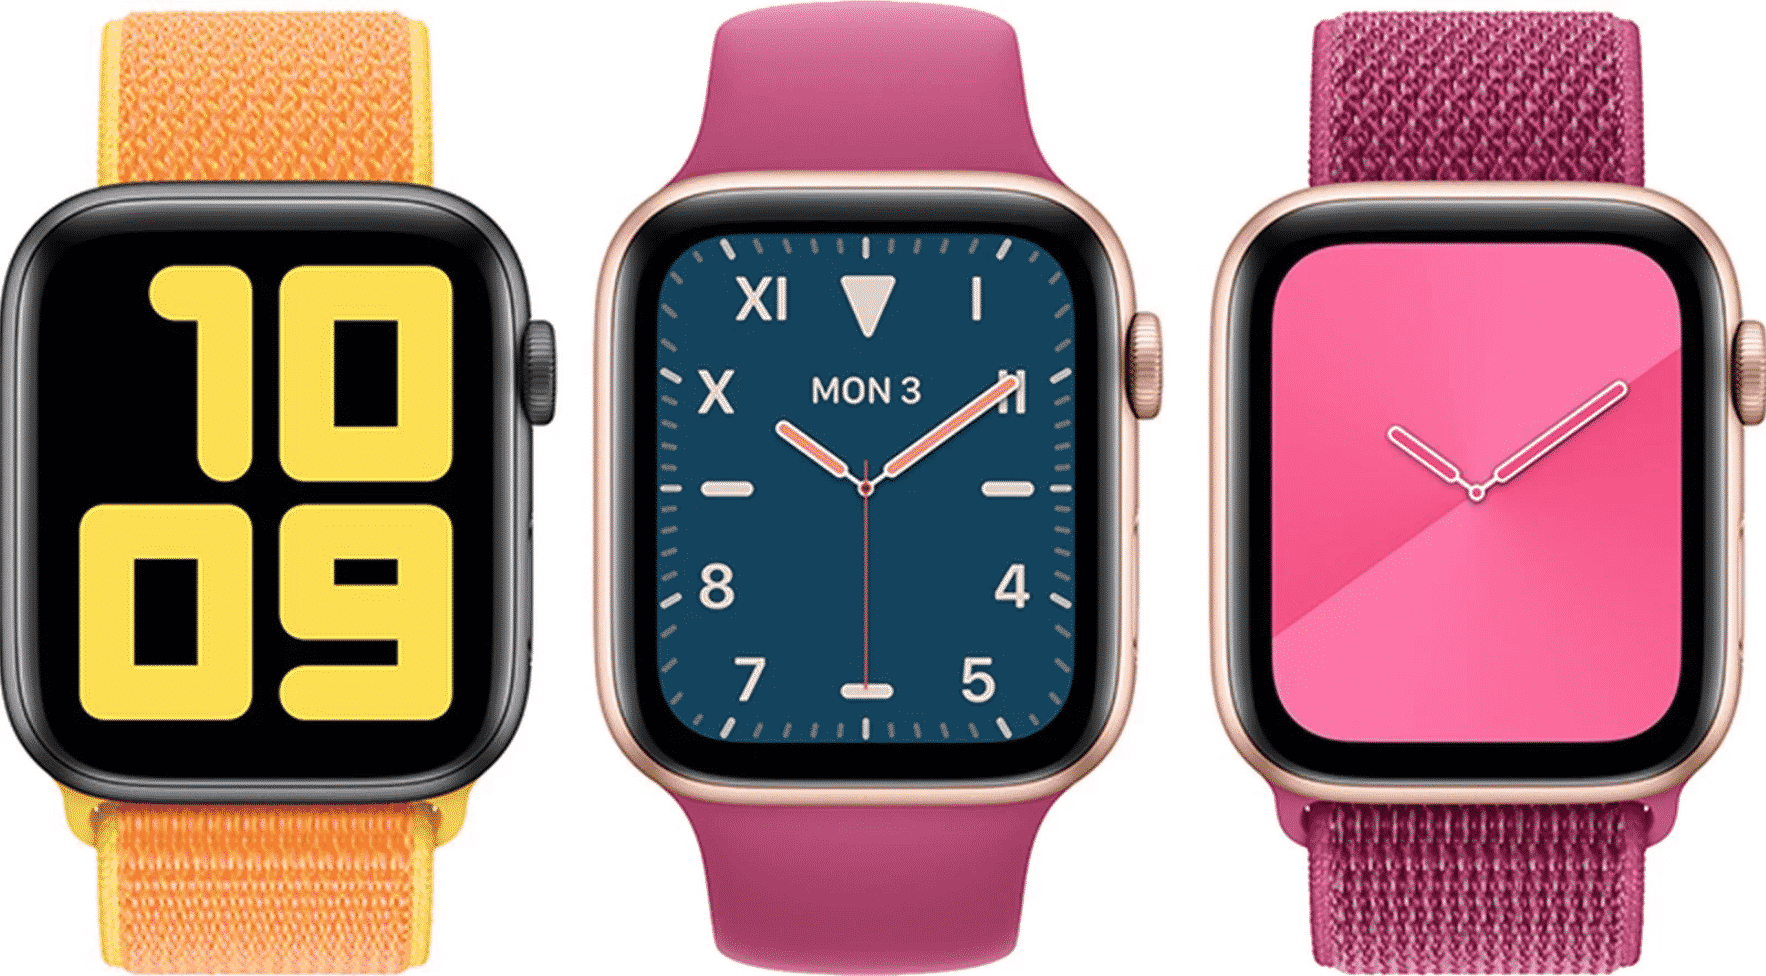 Apple watchOS 7 and Watch Series 6 to feature Watch Face Sharing and Parental Controls